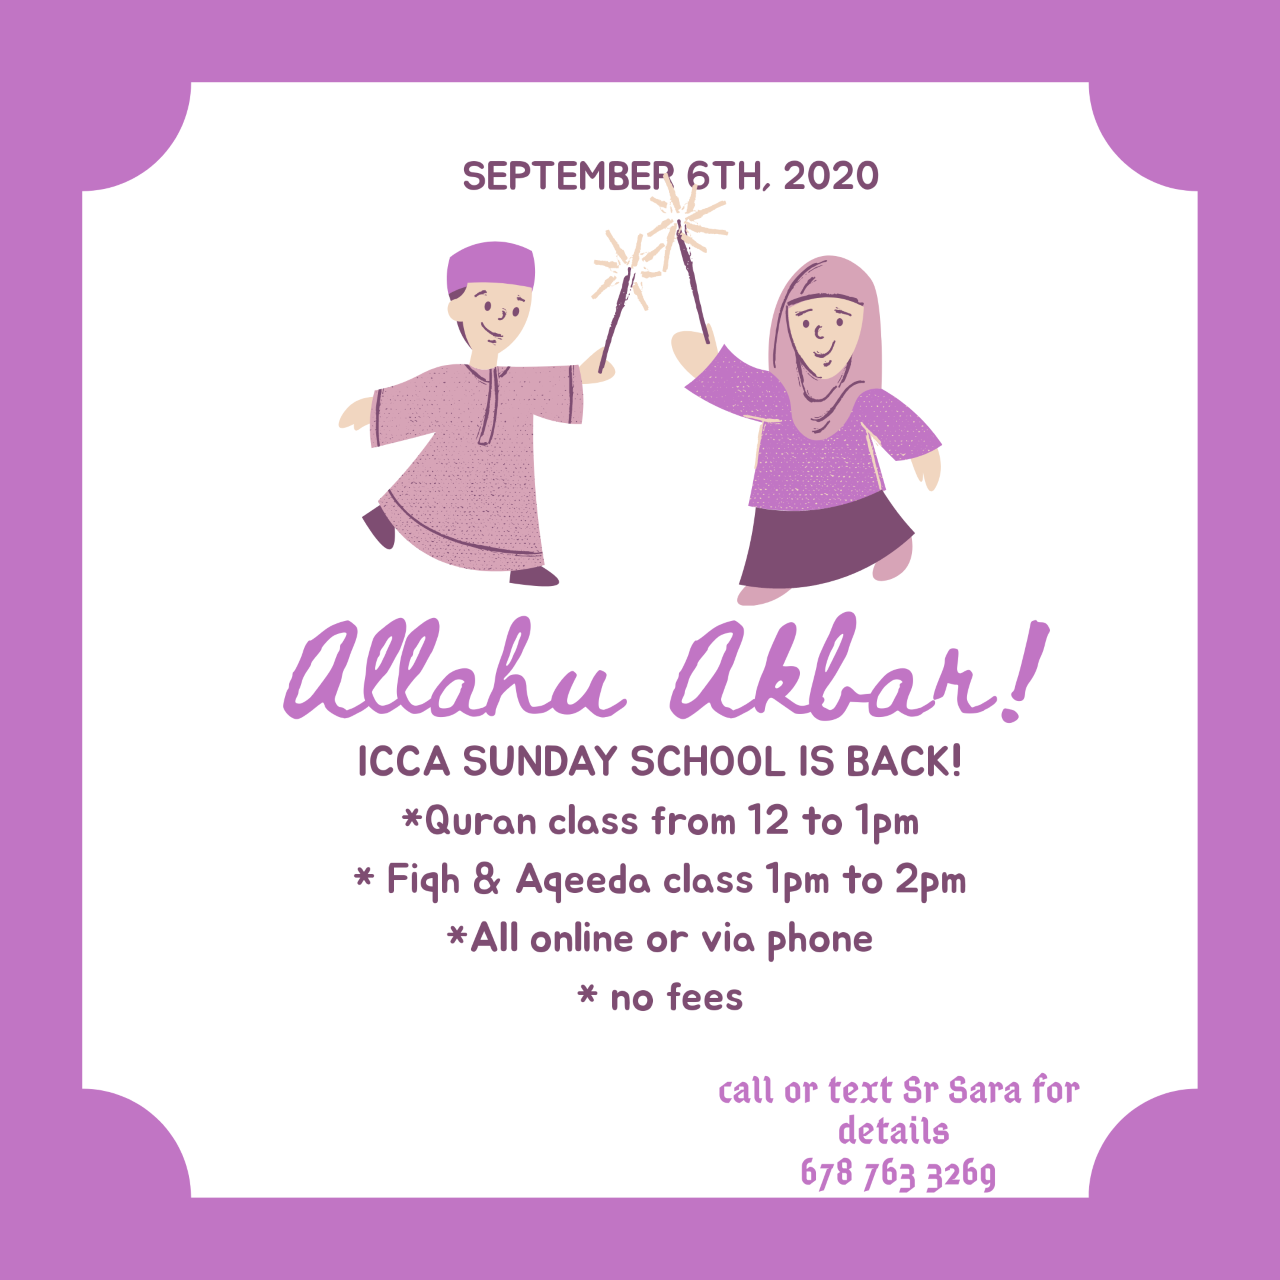 ICCA Sunday School starts Sunday Sept. 6, 2020 InshaaAllah